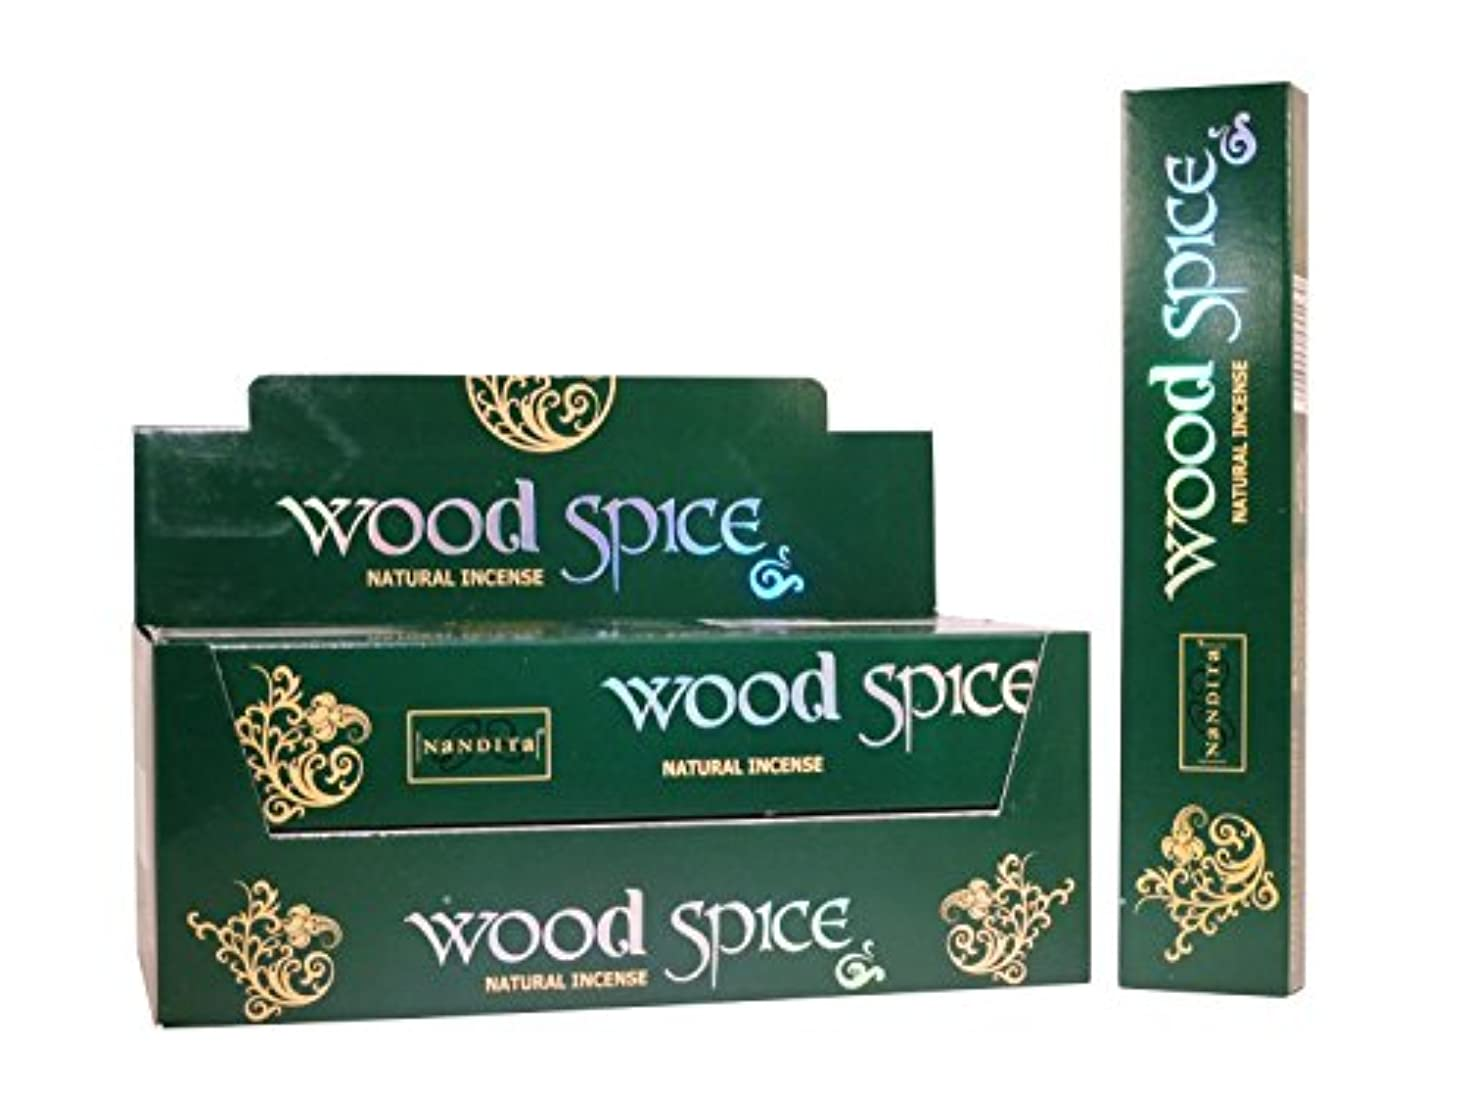 召喚するデイジー現れるNandita Wood Spice Natural Incense